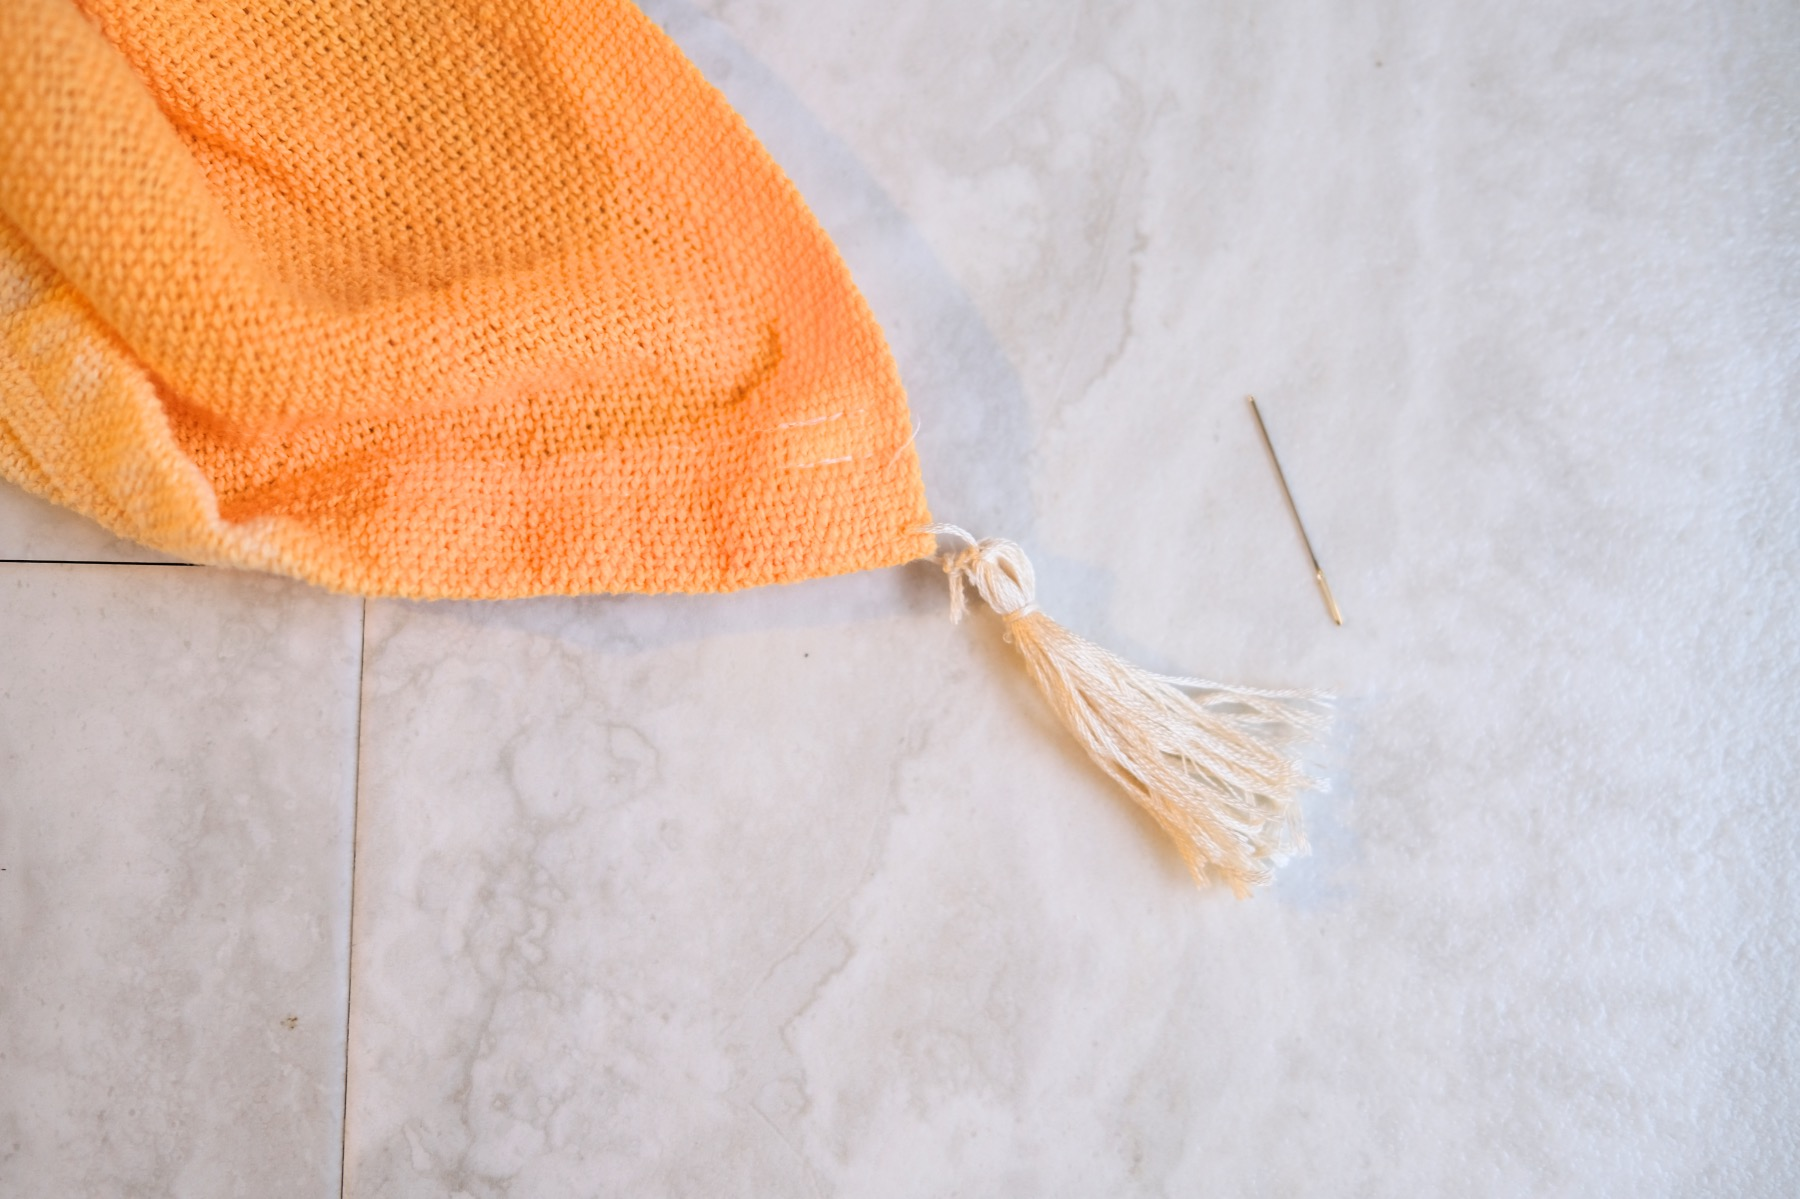 finished tassel on the edge of the blanket